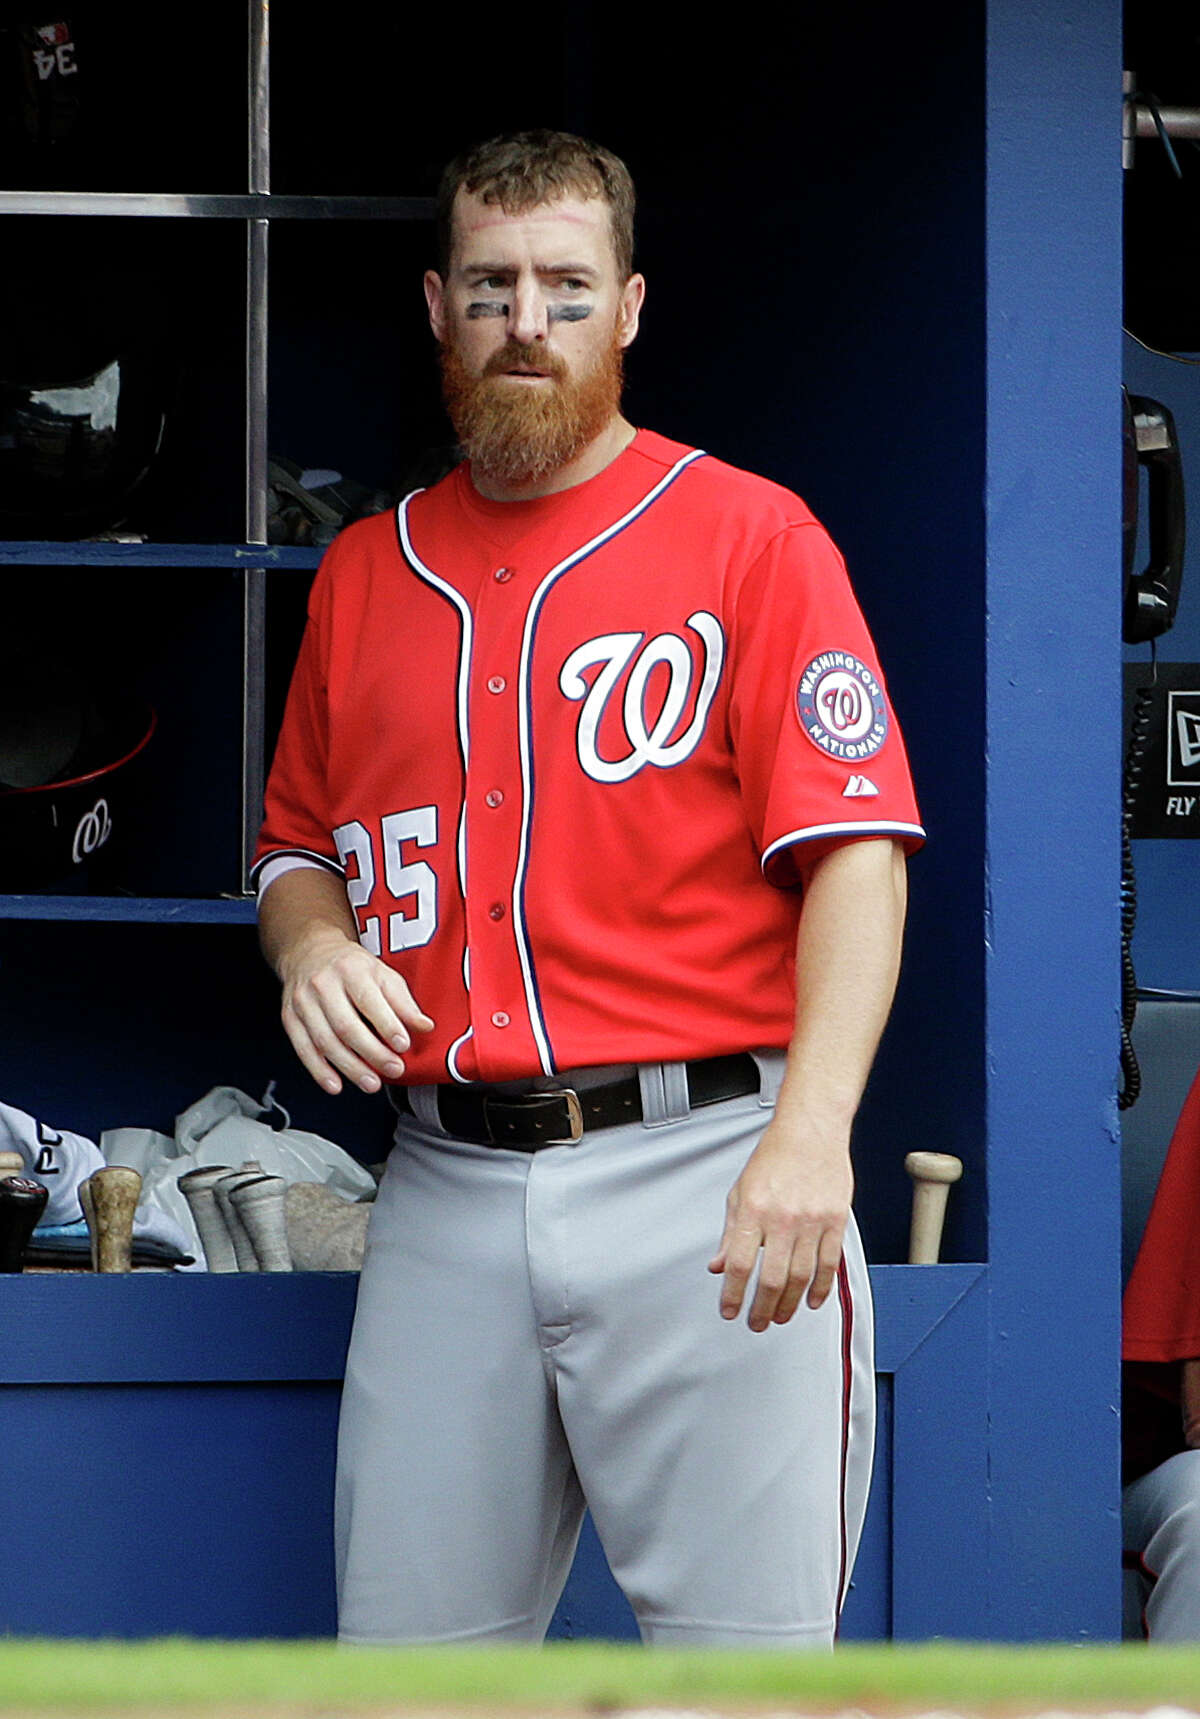 Washington Nationals' Adam LaRoche looks out from the dugout after hitting a home run in the ninth inning of a baseball game against the Atlanta Braves, Sunday, April 13, 2014, in Atlanta. The Braves won 10-2. (AP Photo/David Goldman)